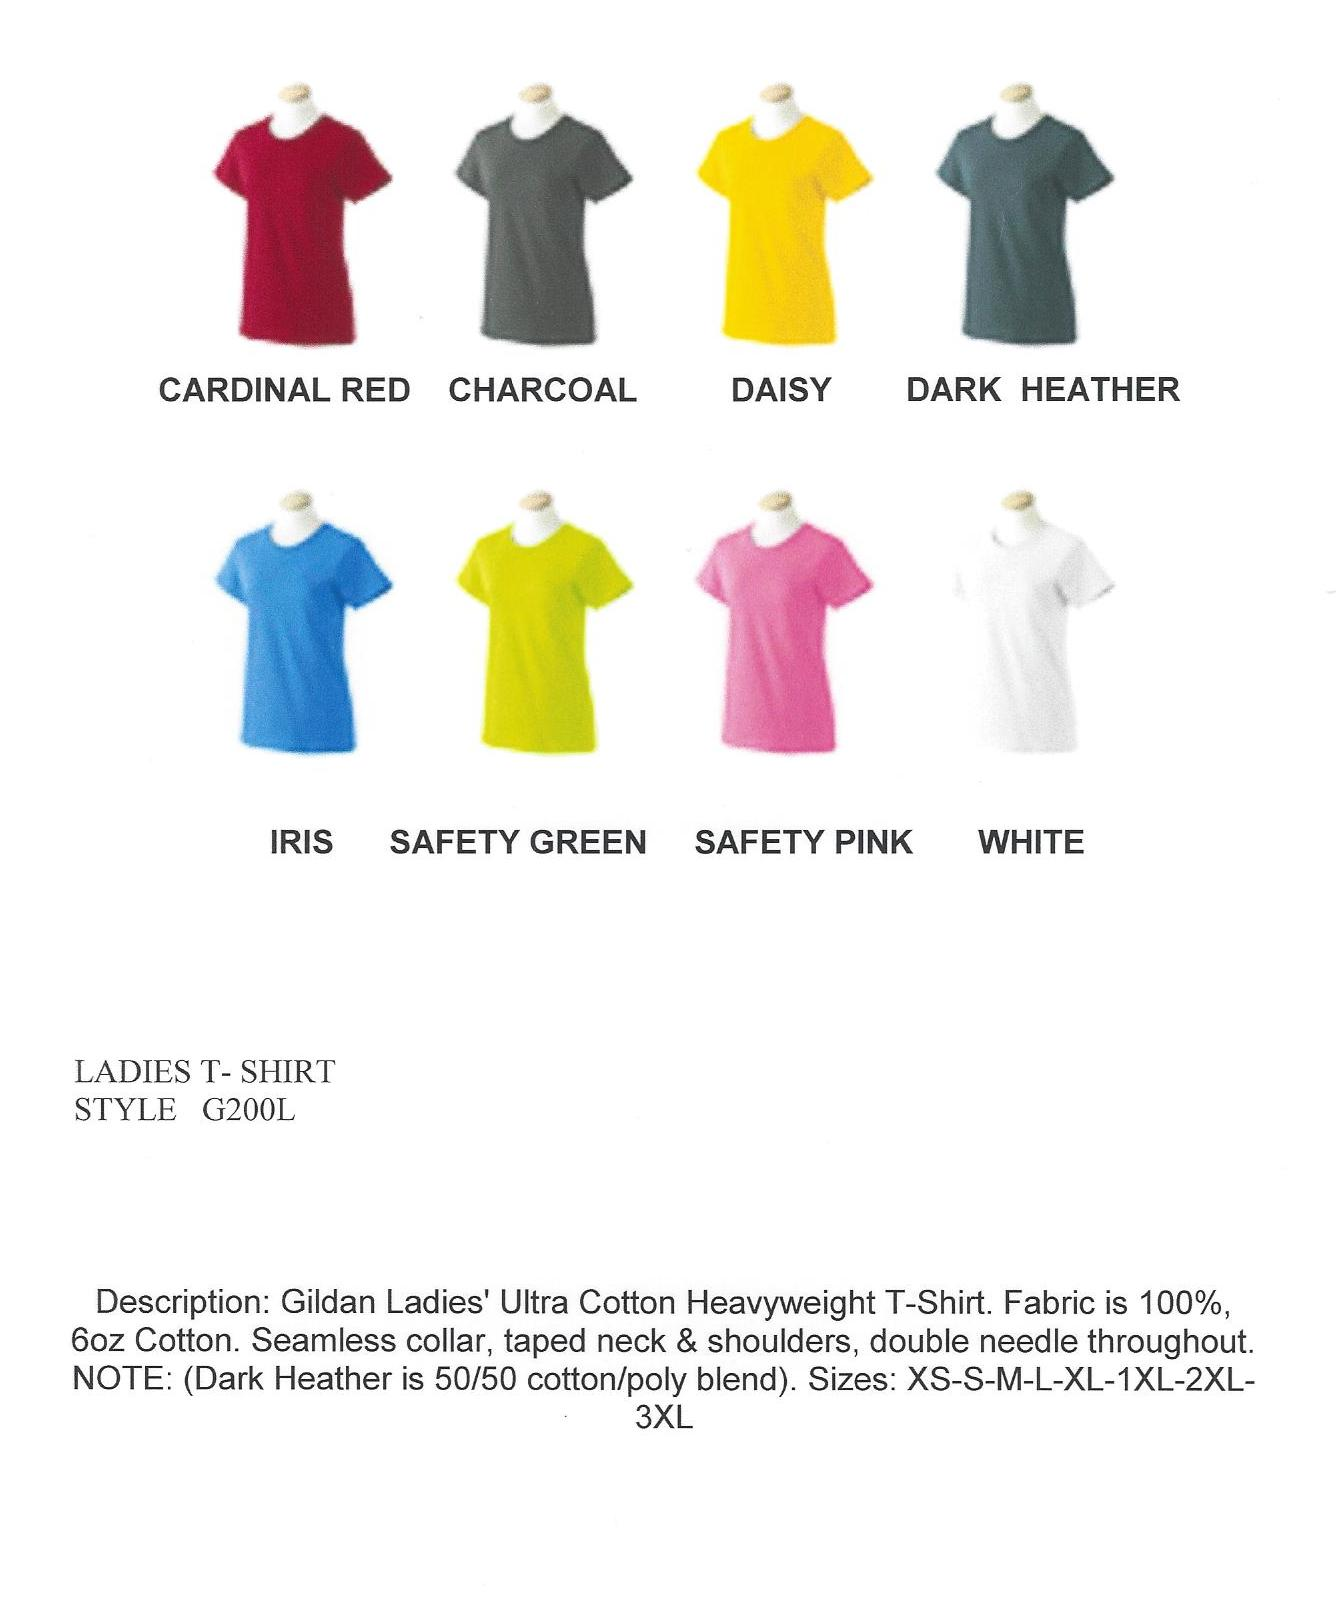 Us coast guard auxiliary division 10 worcester ma 1st district nr womens t shirt size chart womens polo style and colors geenschuldenfo Image collections